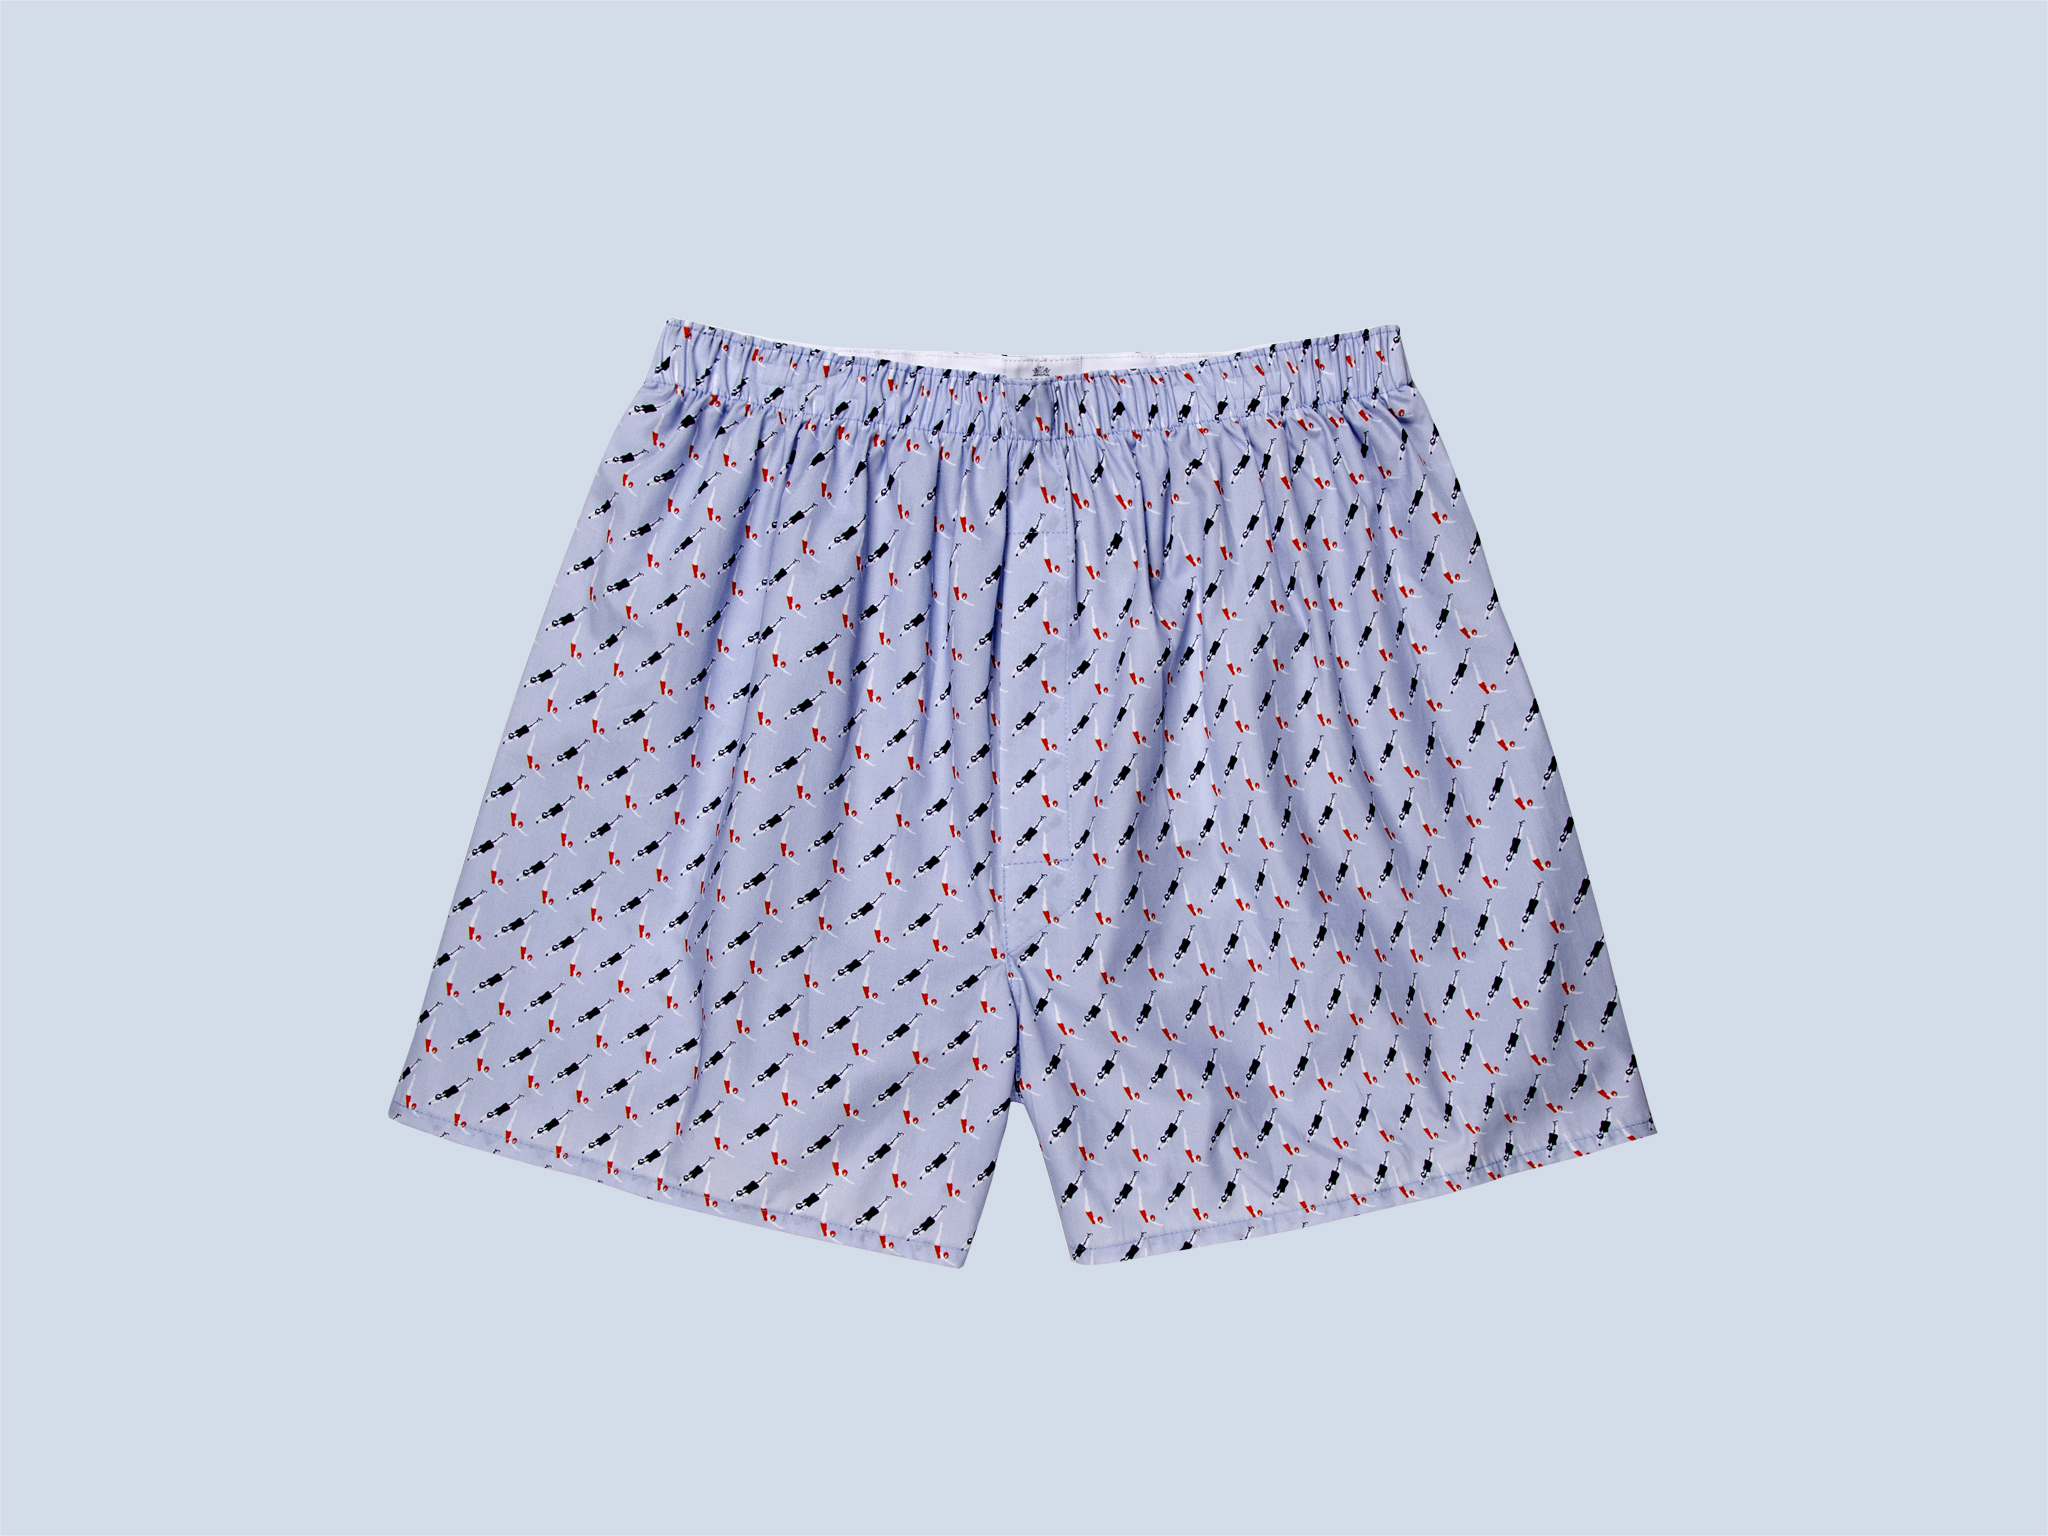 Blue Swimmers Boxers, Valentine's Day gifts for him